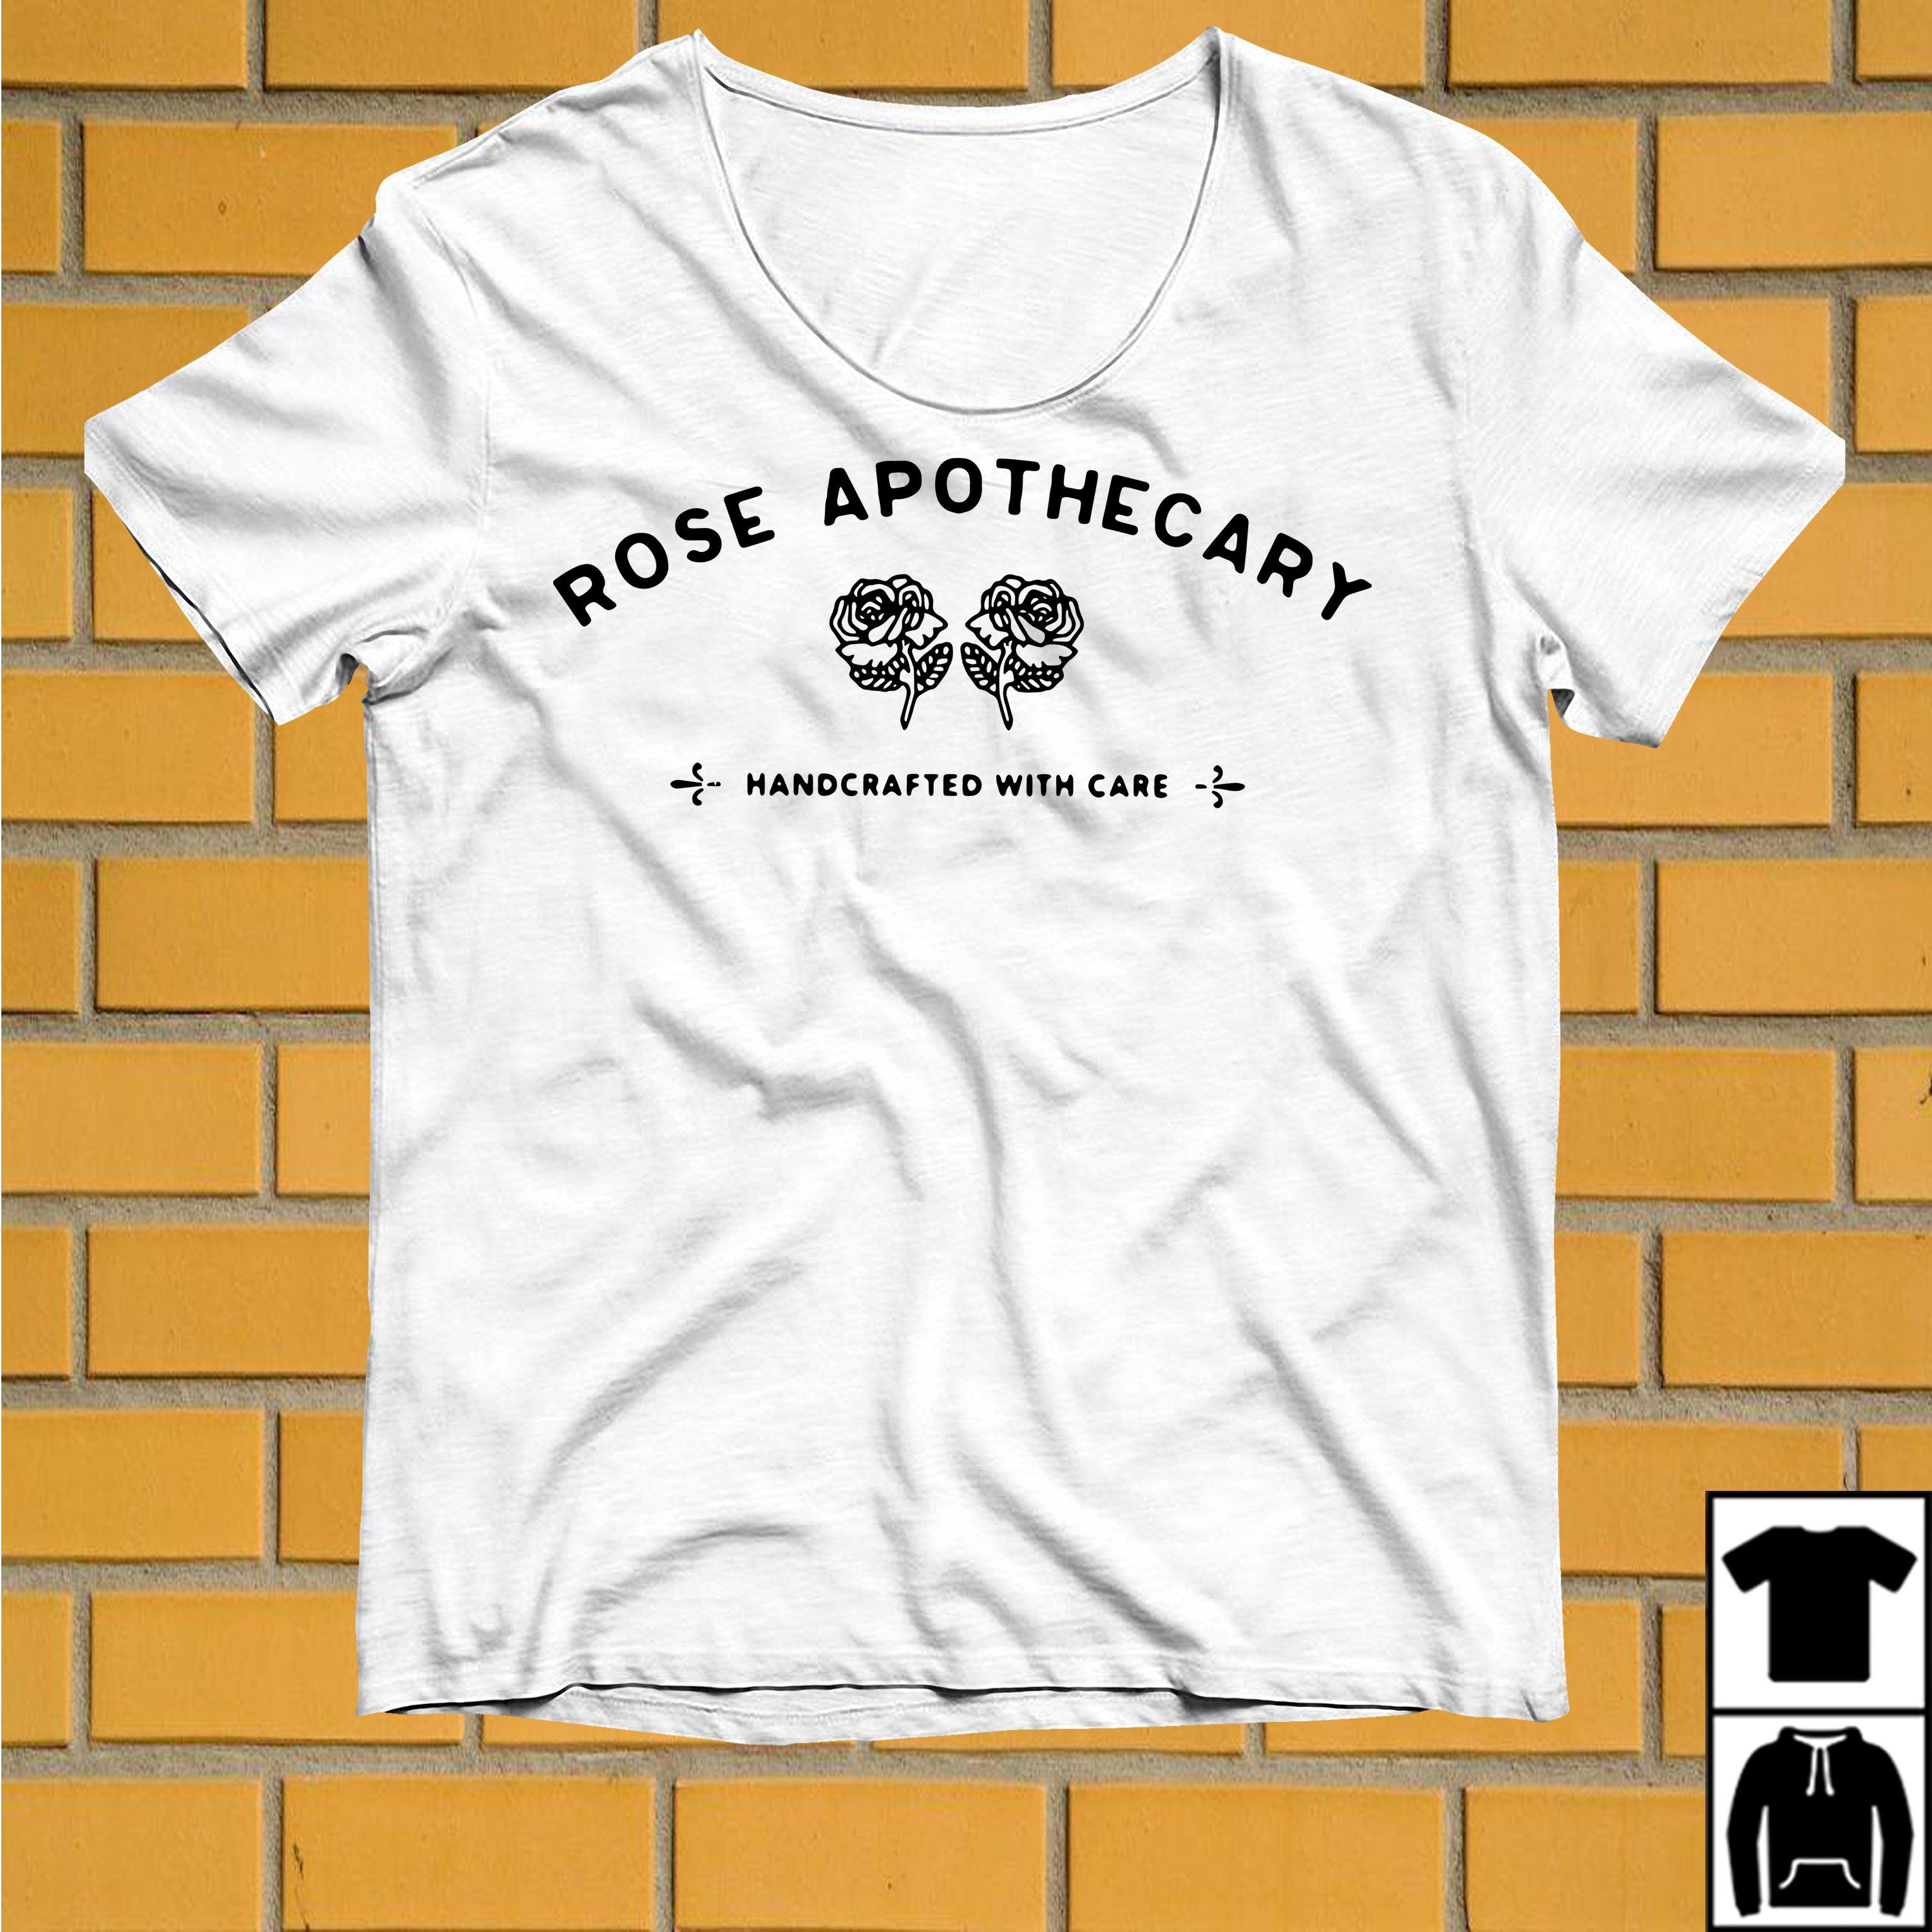 Rose Apothecary Handcrafted with care shirt